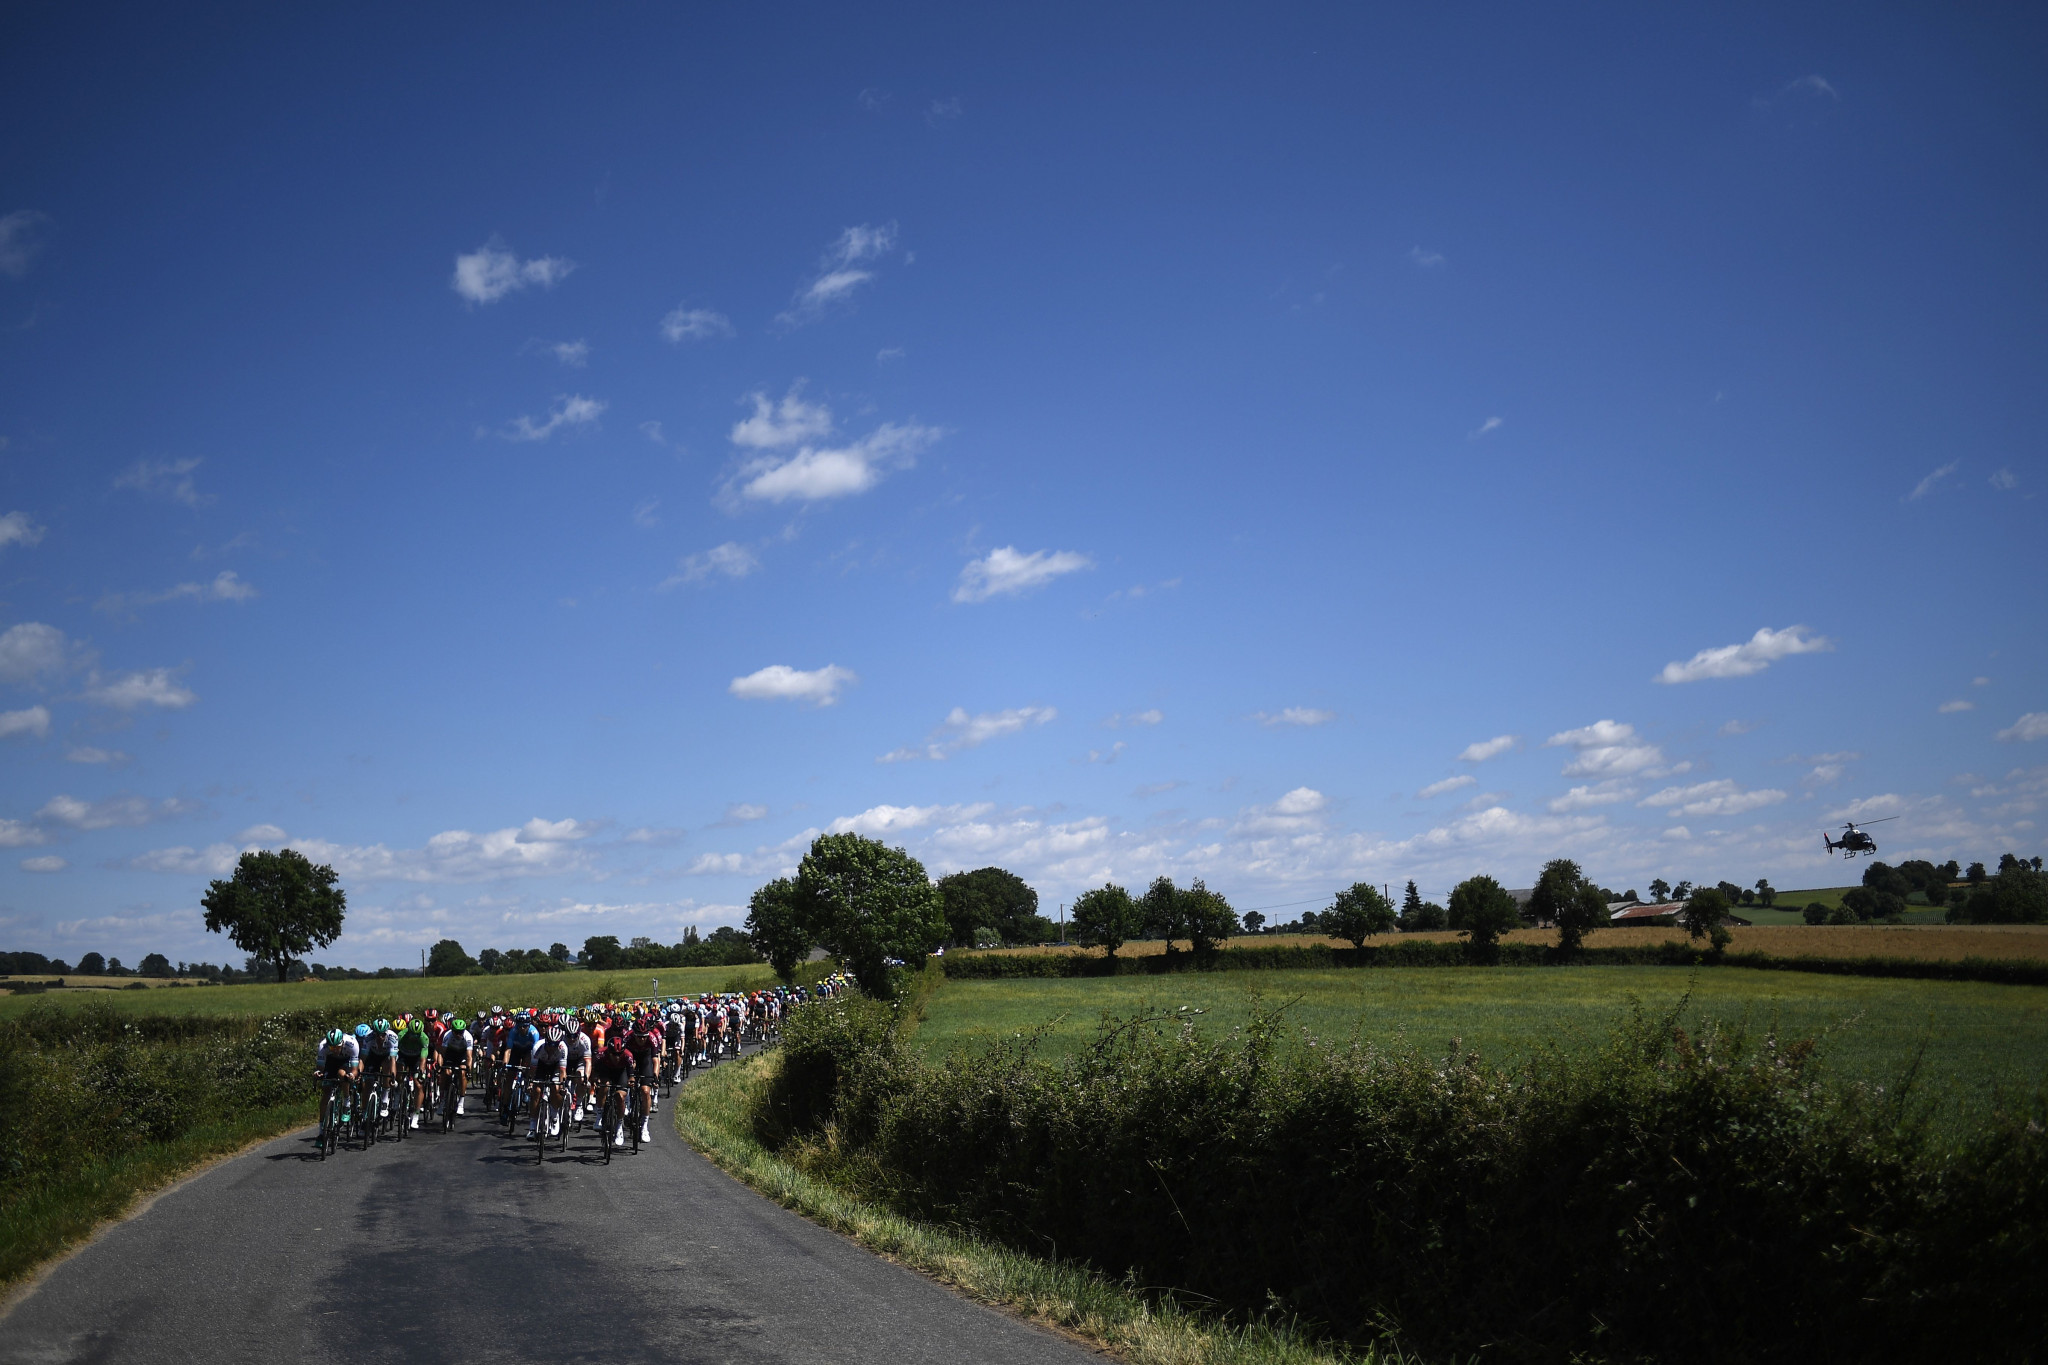 Tour de France organisers set May deadline to determine whether race can be held